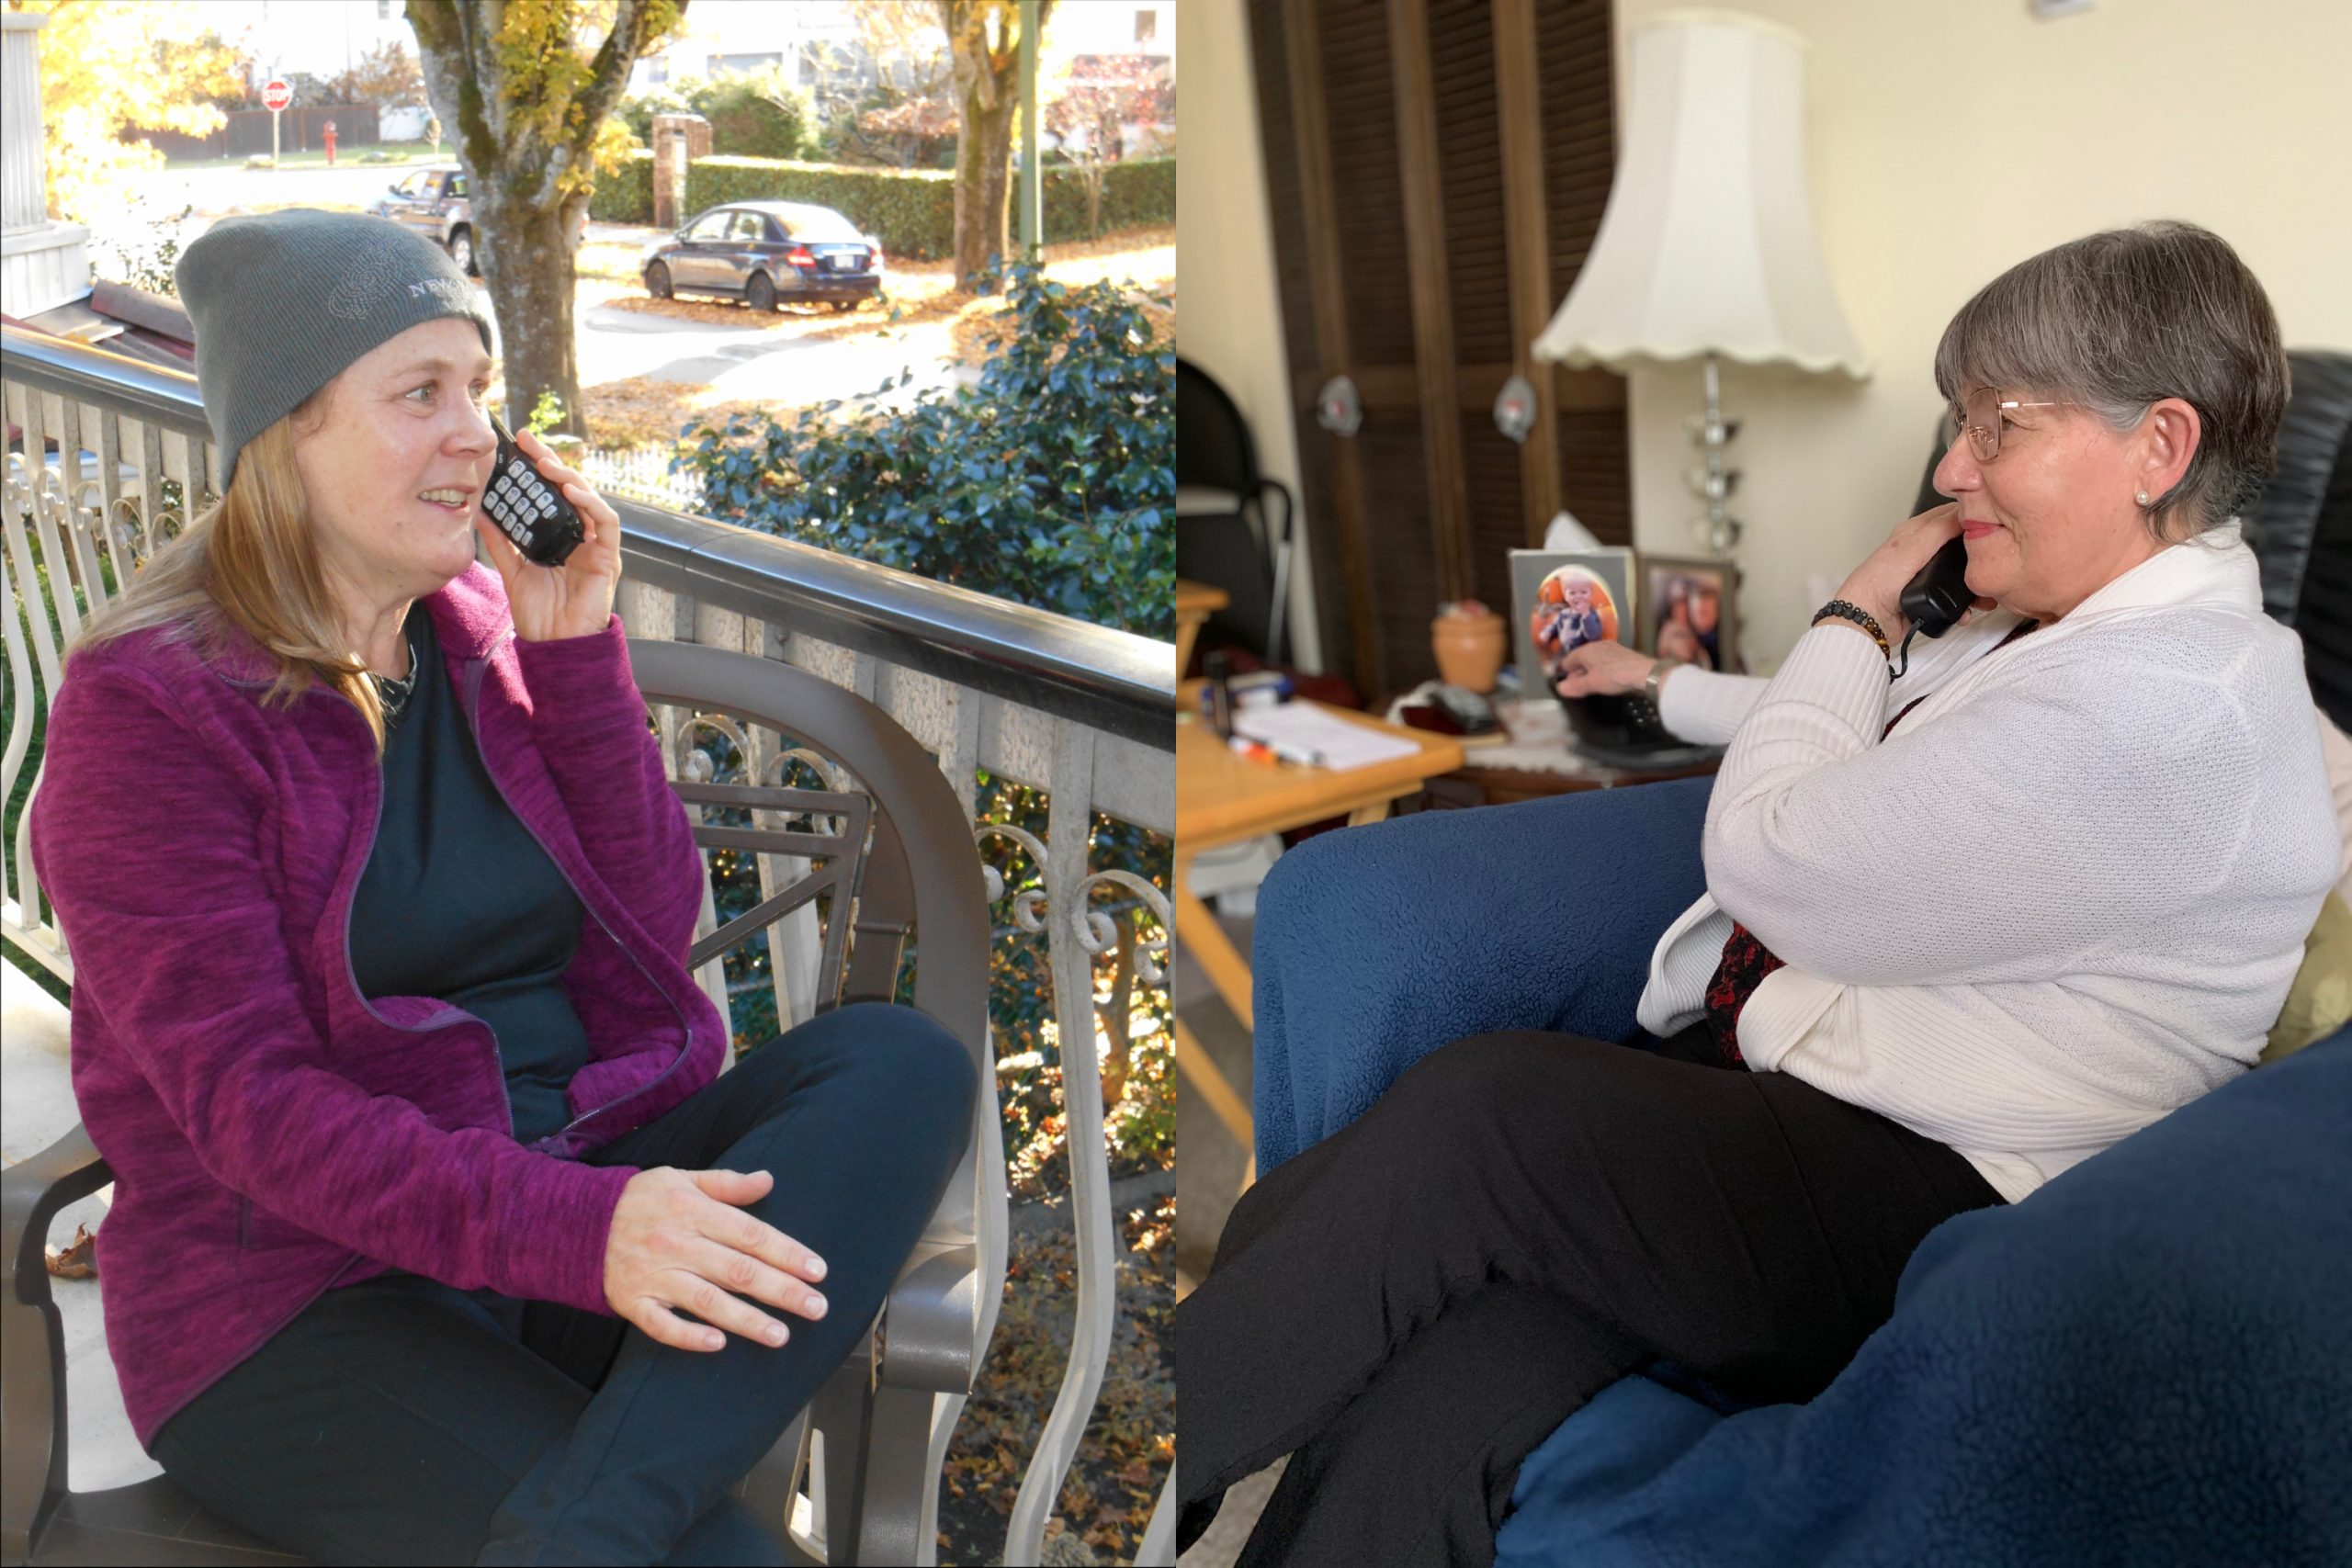 2 combined photos of a woman outdoors on a patio on a phone call and a senior indoors sitting on a couch on a phonecall